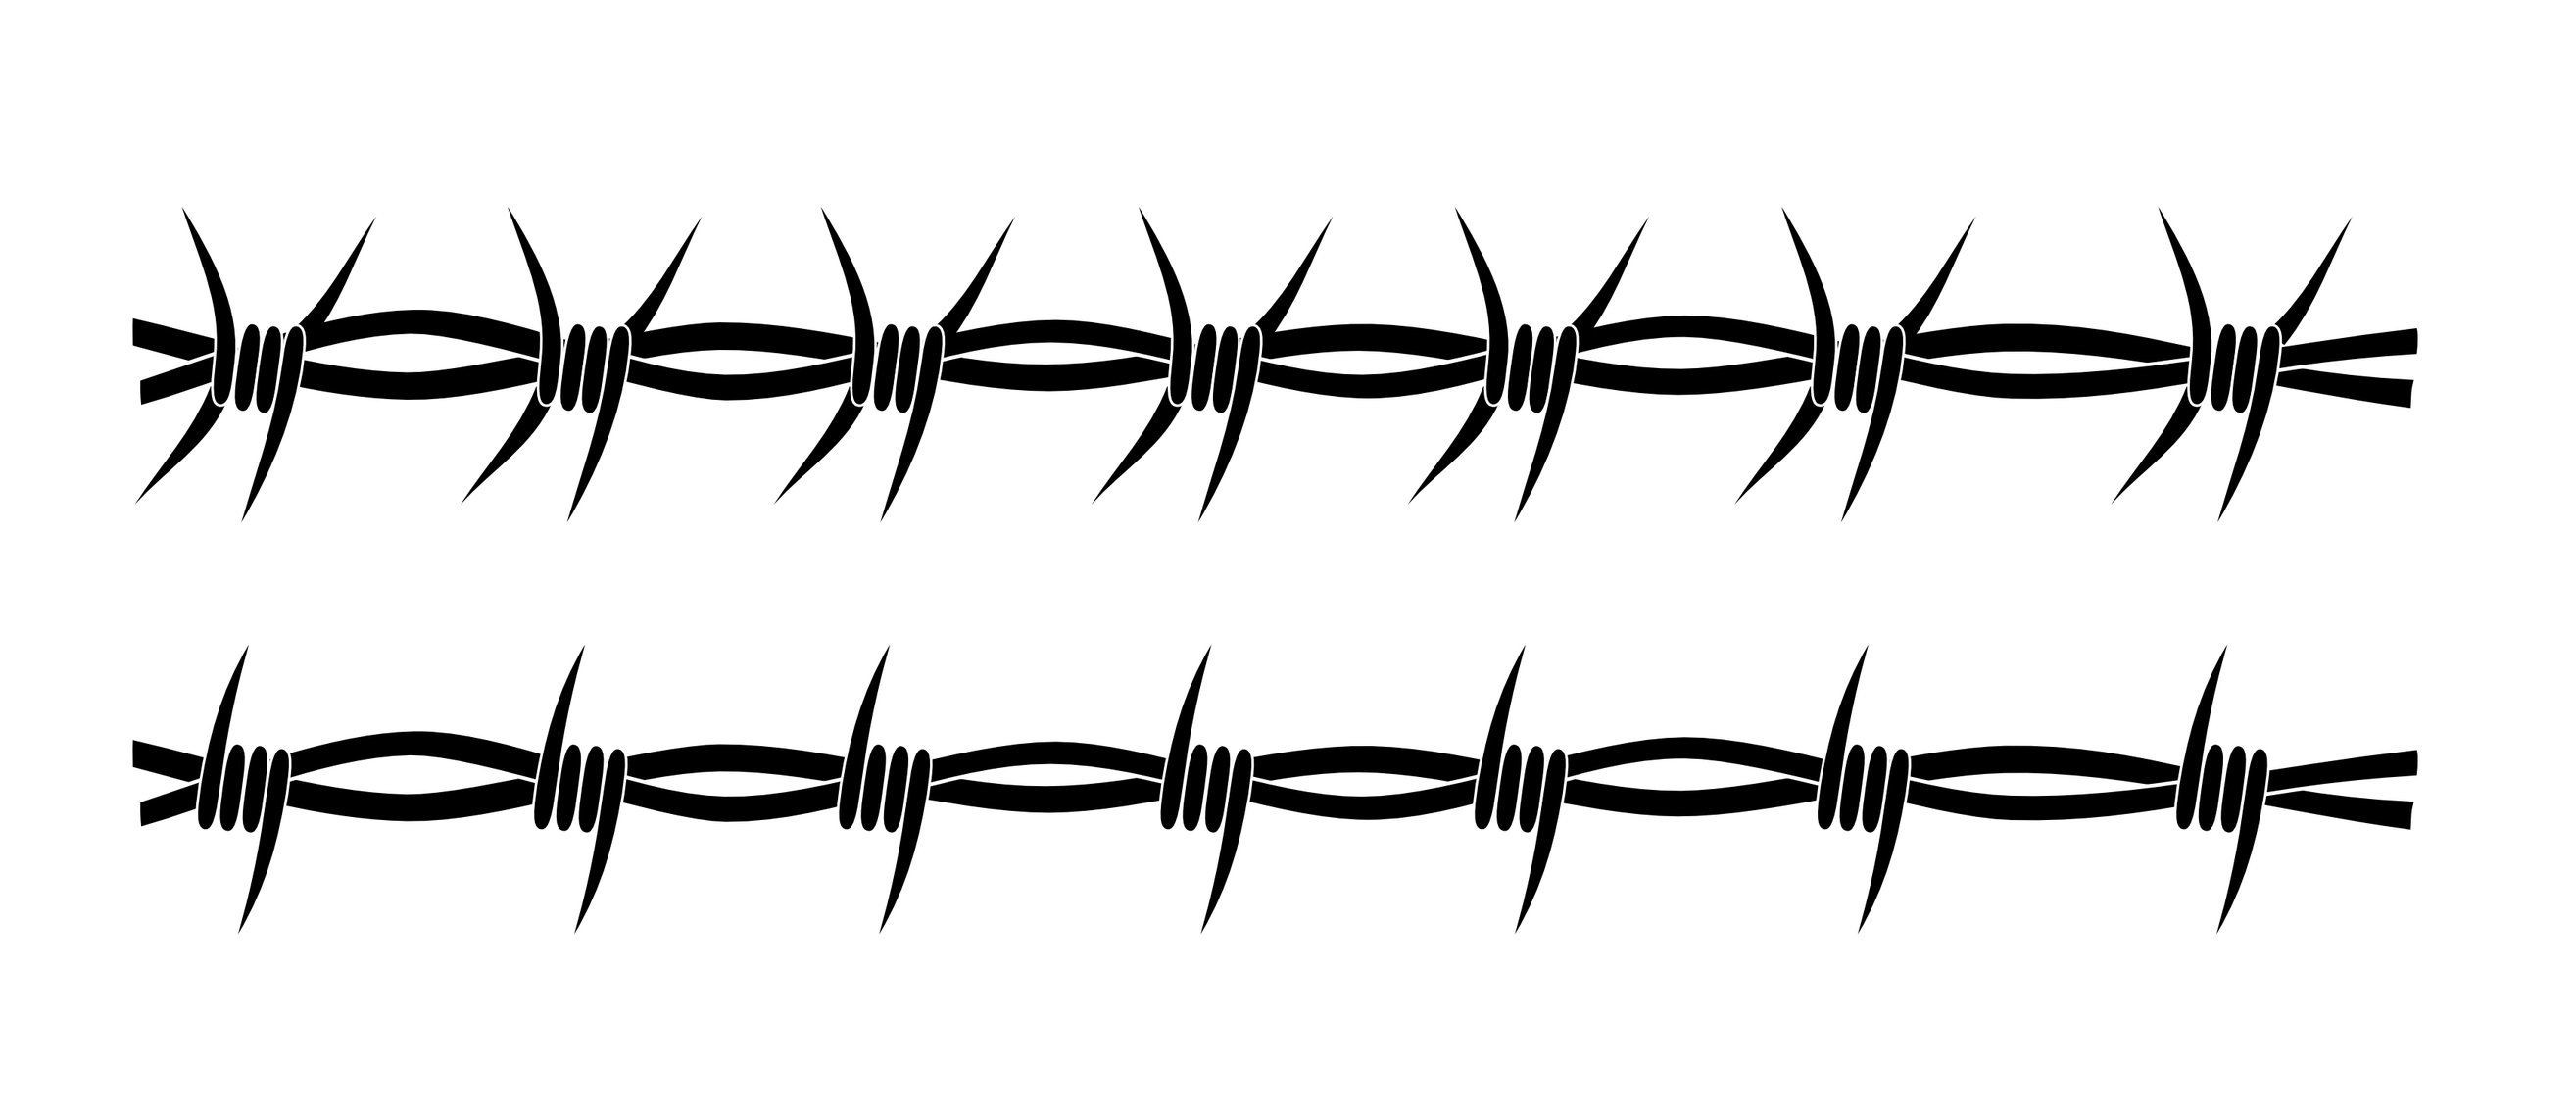 Wild west clipart barbed wire. Barb fence clip art